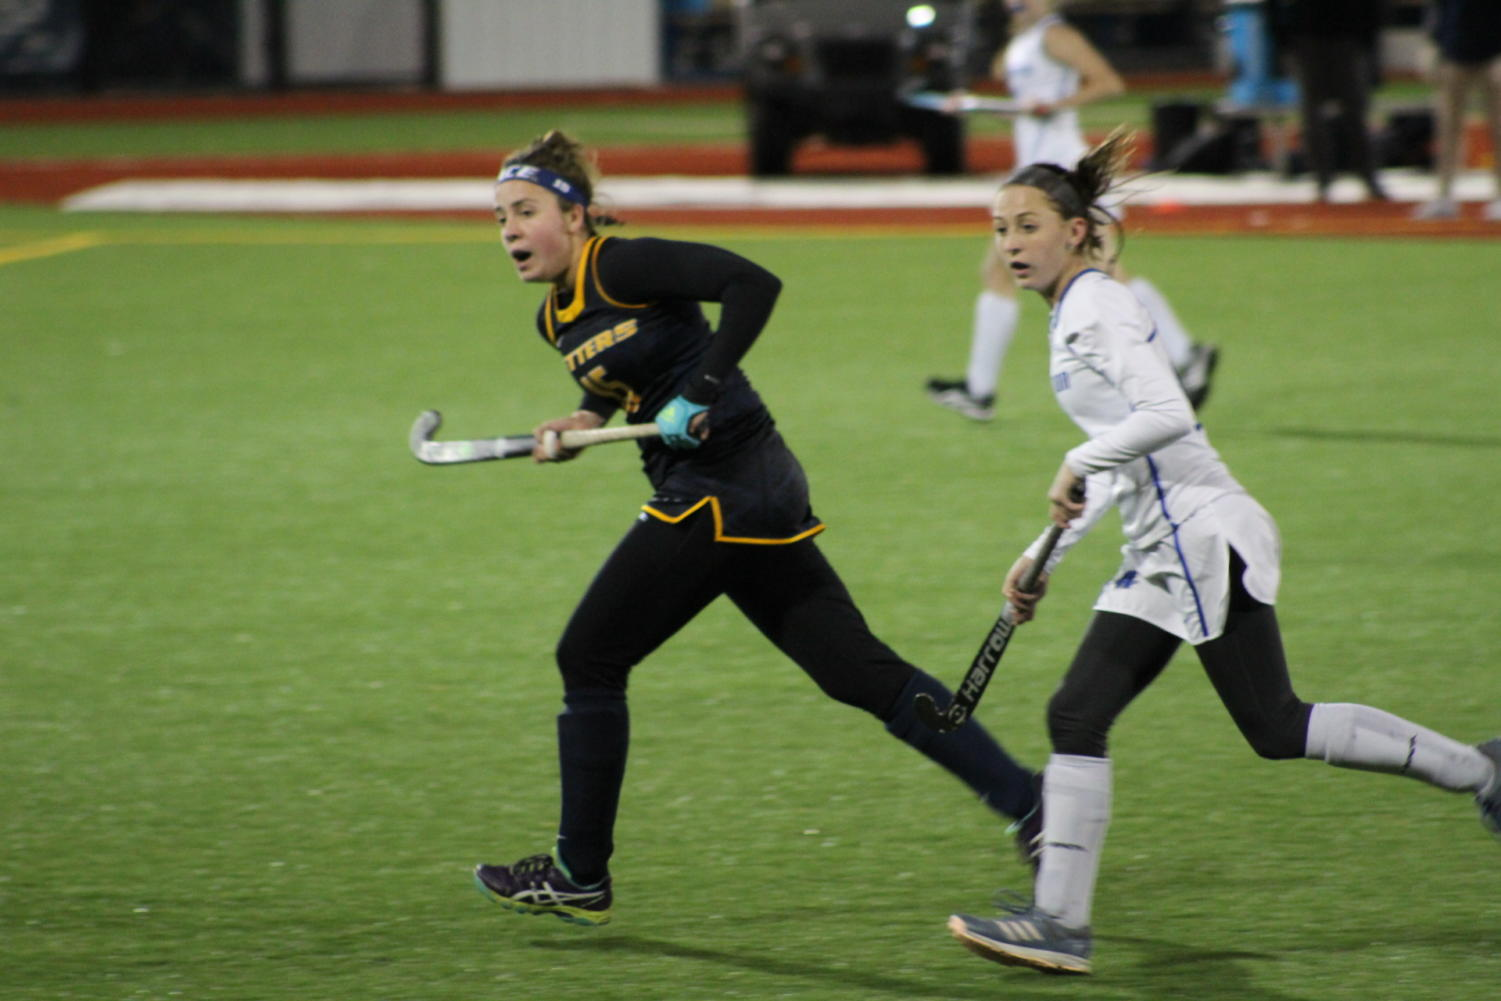 Nearly a year after Pace Field Hockey fell to Assumption in the quarter finals, history repeated itself again on Tuesday. However, the Setters season may not be over yet.